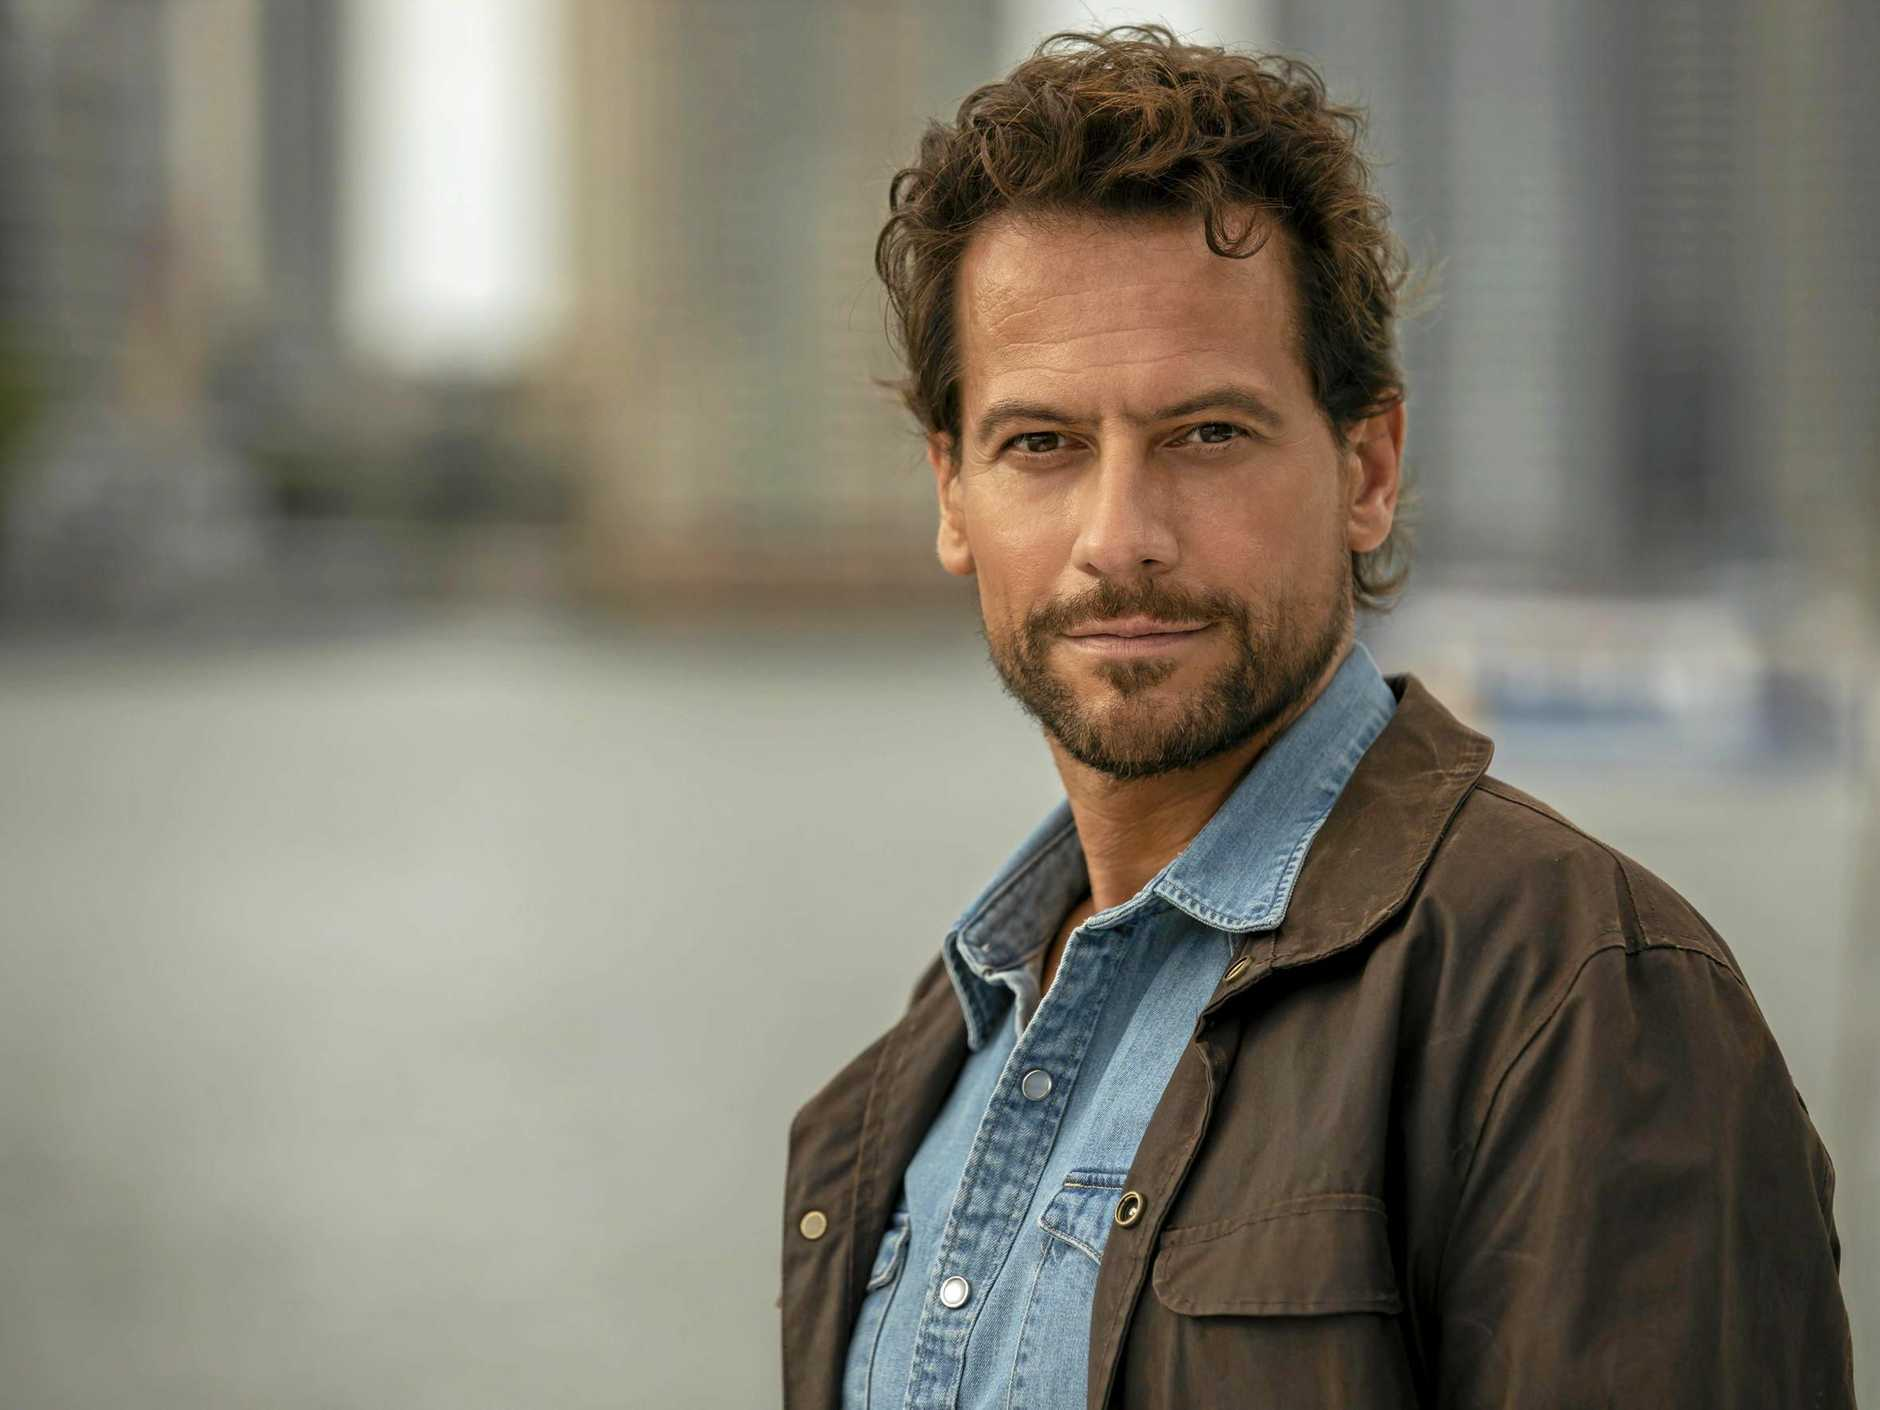 Ioan Gruffudd returns in season two of the TV series Harrow.